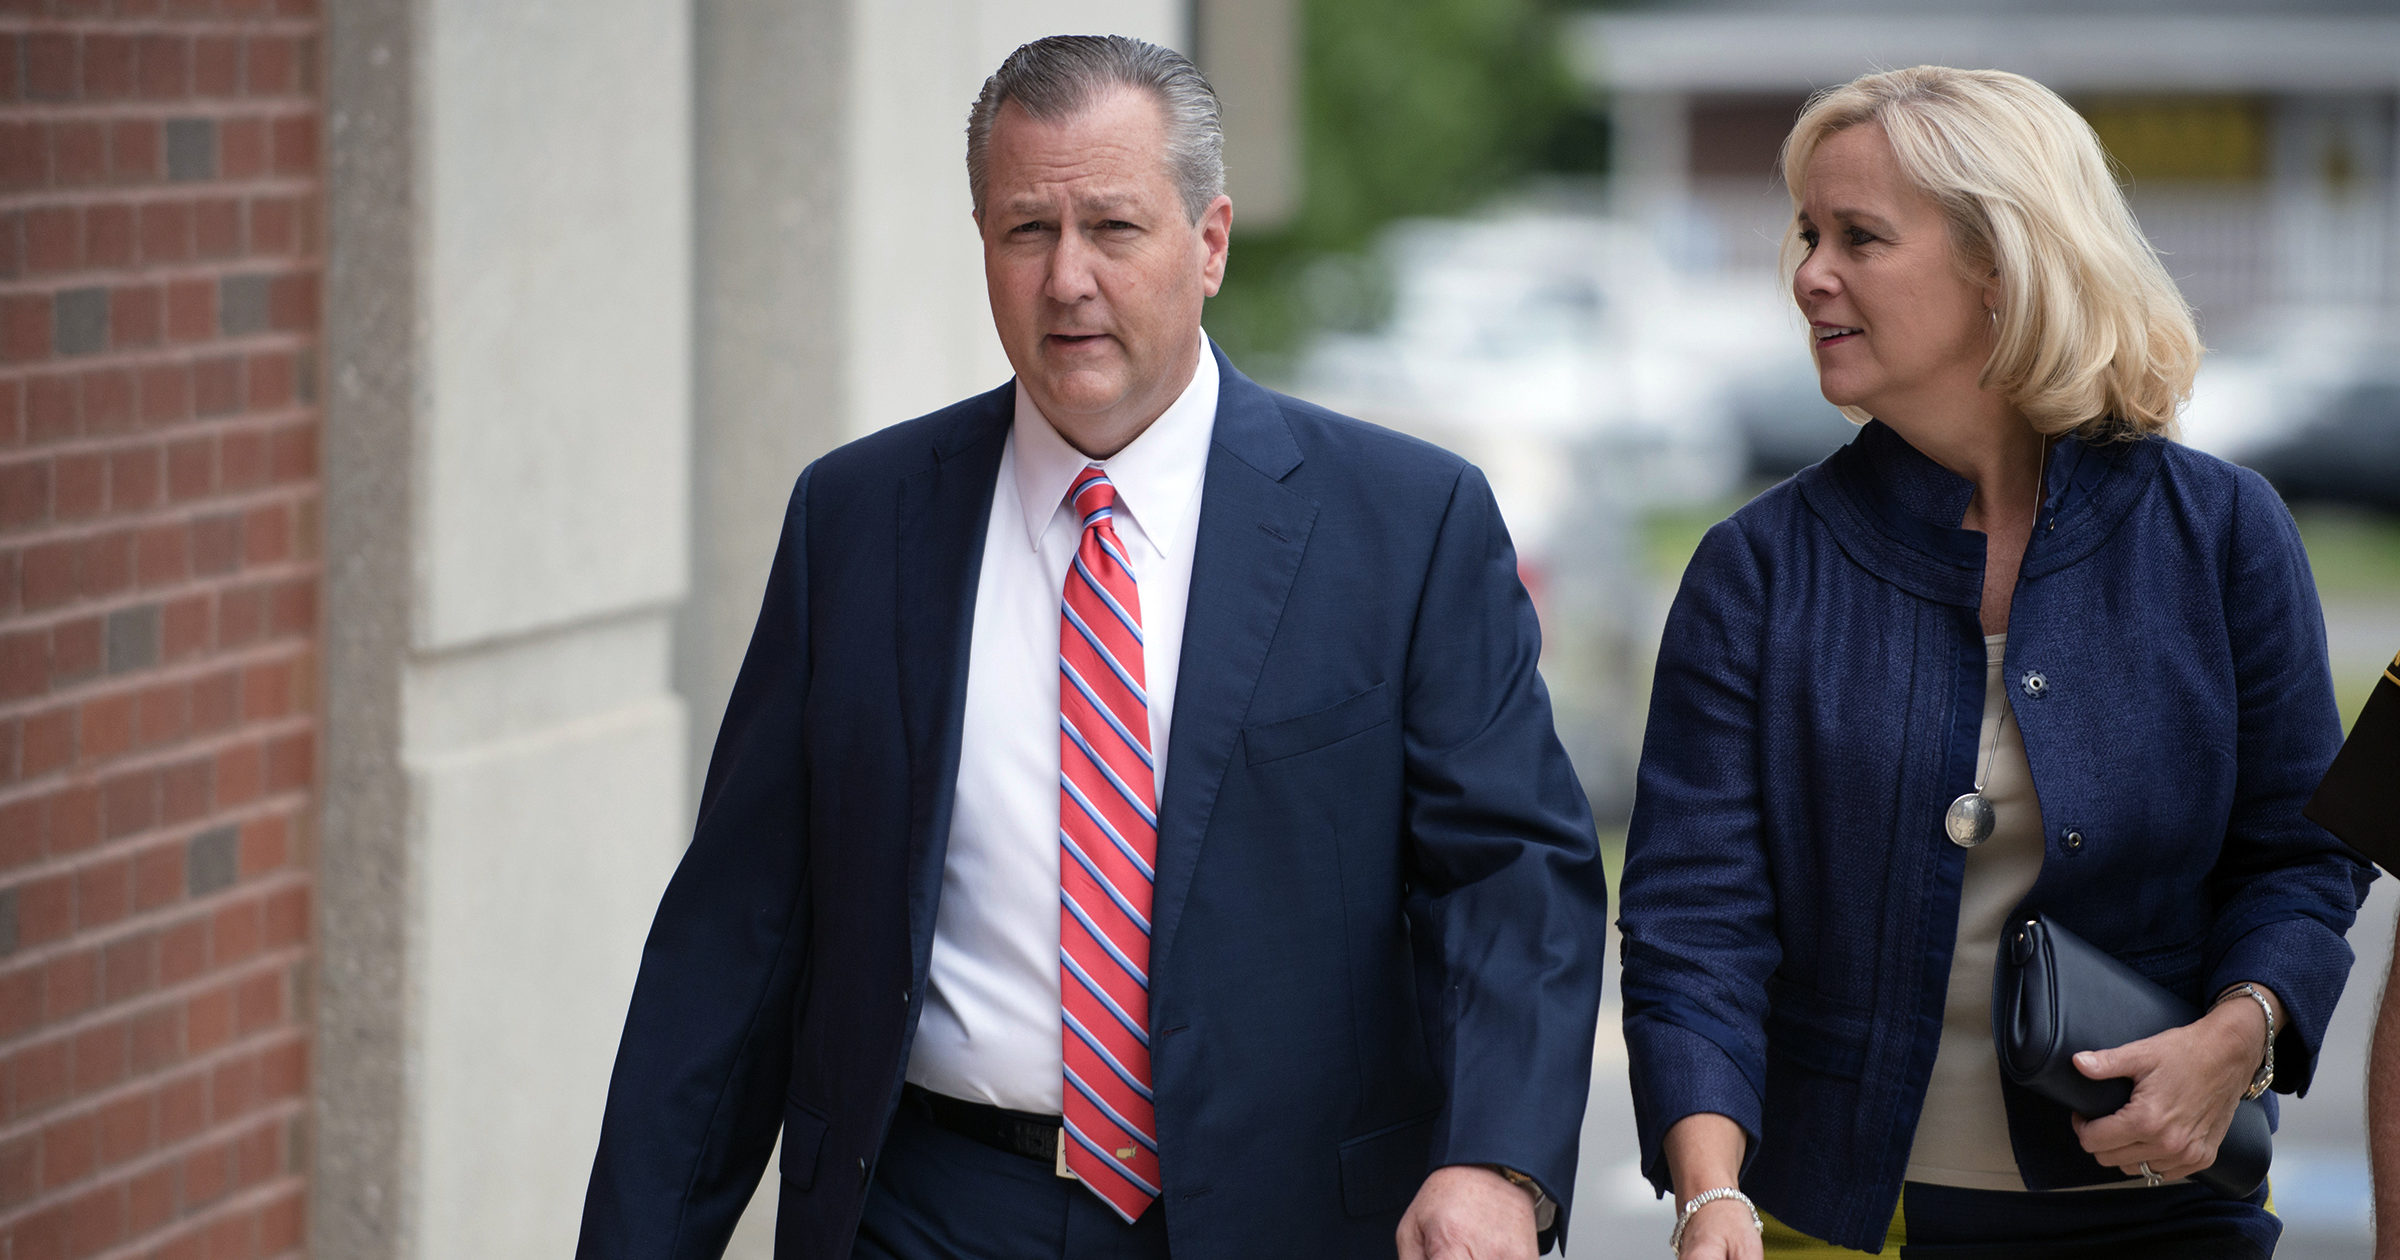 In this Sept. 2, 2016, file photo, Mike Hubbard, former Alabama Speaker of the House, and his wife, Susan, arrive for a hearing at the Lee County Justice Center in Opelika, Alabama. Mike Hubbard reported Sept. 11, 2020, to a county detention center to begin the sentence after an unsuccessful effort to overturn his ethics conviction.